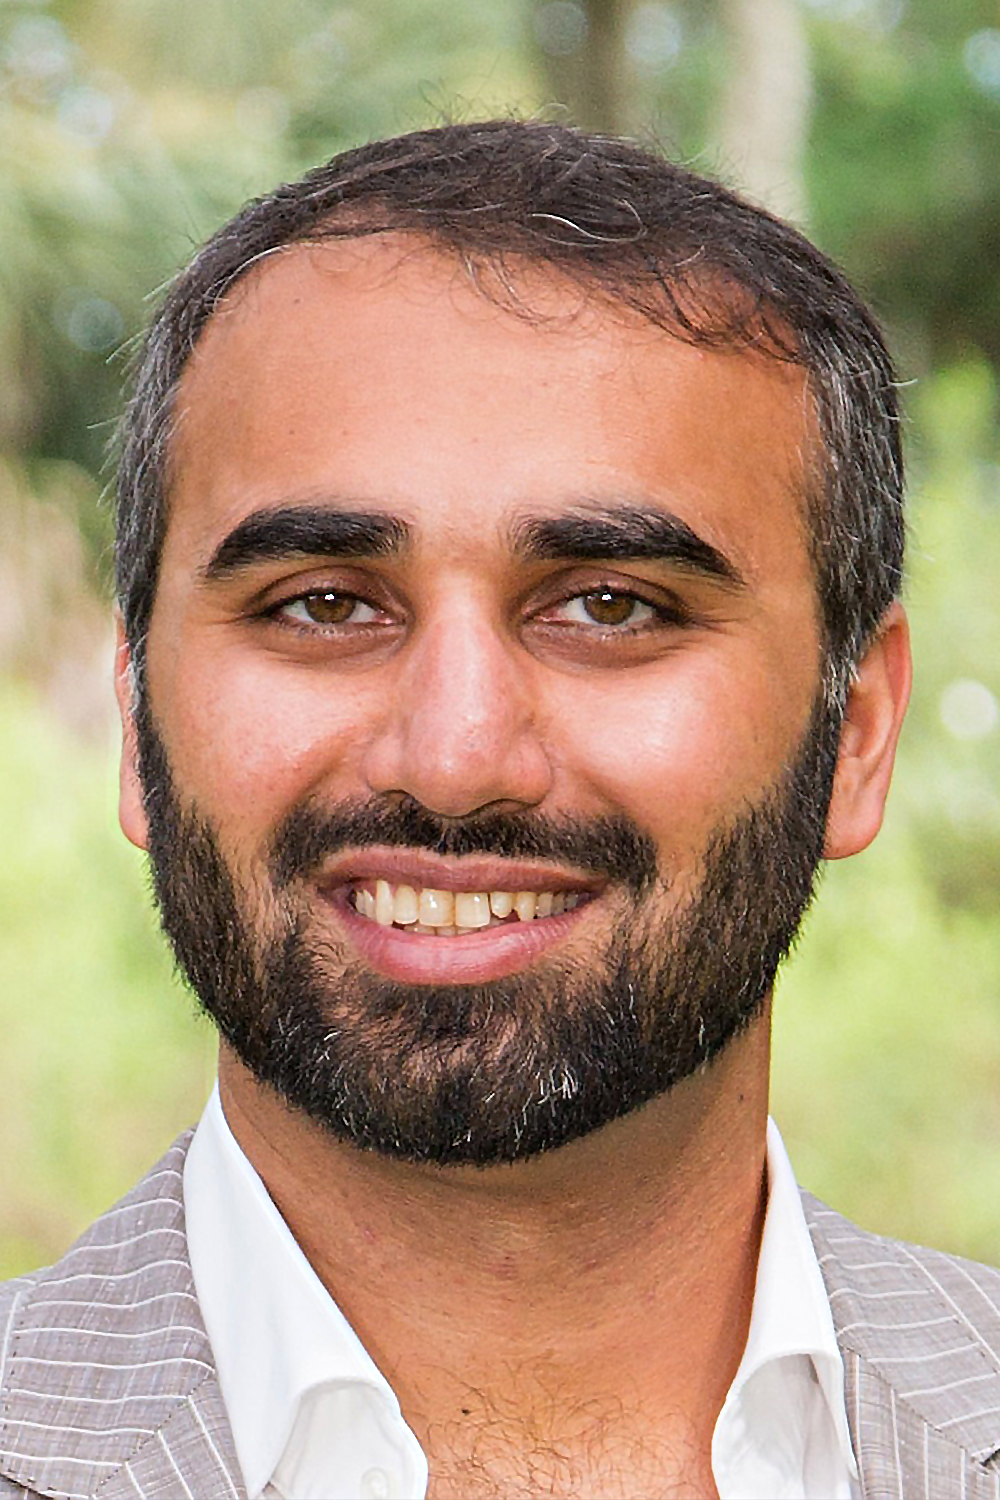 Hafeez Lakhani, Founder and President - Yale University, B.A. Mathematics and EconomicsPerfect score on SAT and ACTA former non-profit field worker in India and a commodities trader on Wall Street, Hafeez has a natural ability to see potential and opportunity. For him, reaching that potential is simply a matter of structure, dedication and character.Now a nineteen year veteran in test prep, Hafeez has mastered an approach to teaching where he infuses instruction with powerful elements of motivation. His passion for coaching manifests in its mastery—having honed the Lakhani Coaching method to serve a growing population of high achievers.